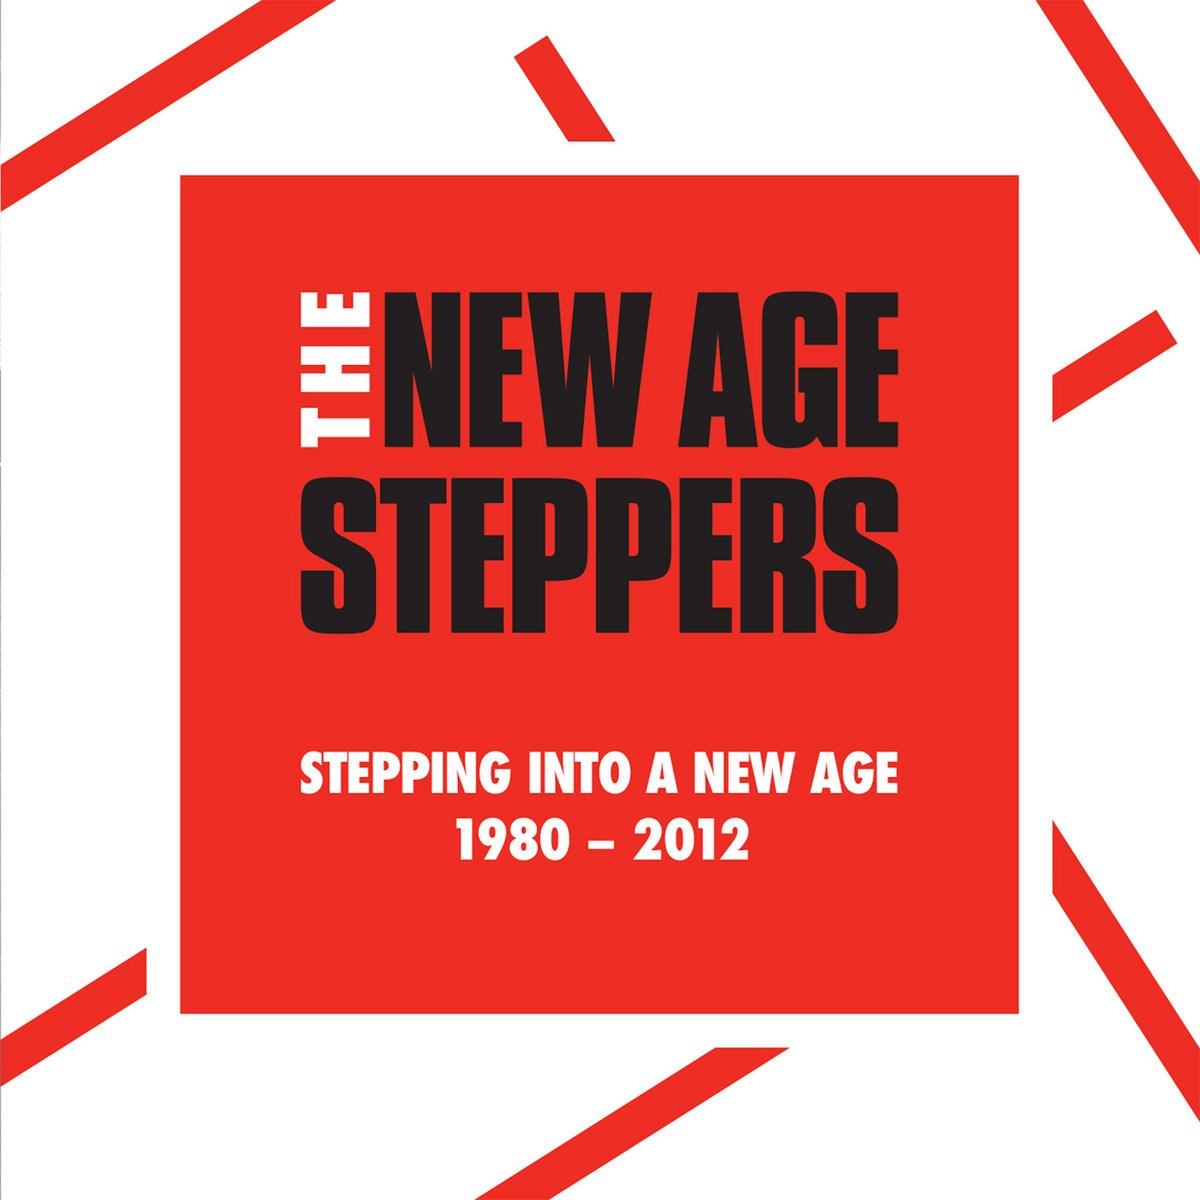 News – New Age Steppers – Stepping Into a New Age 1980 – 2012